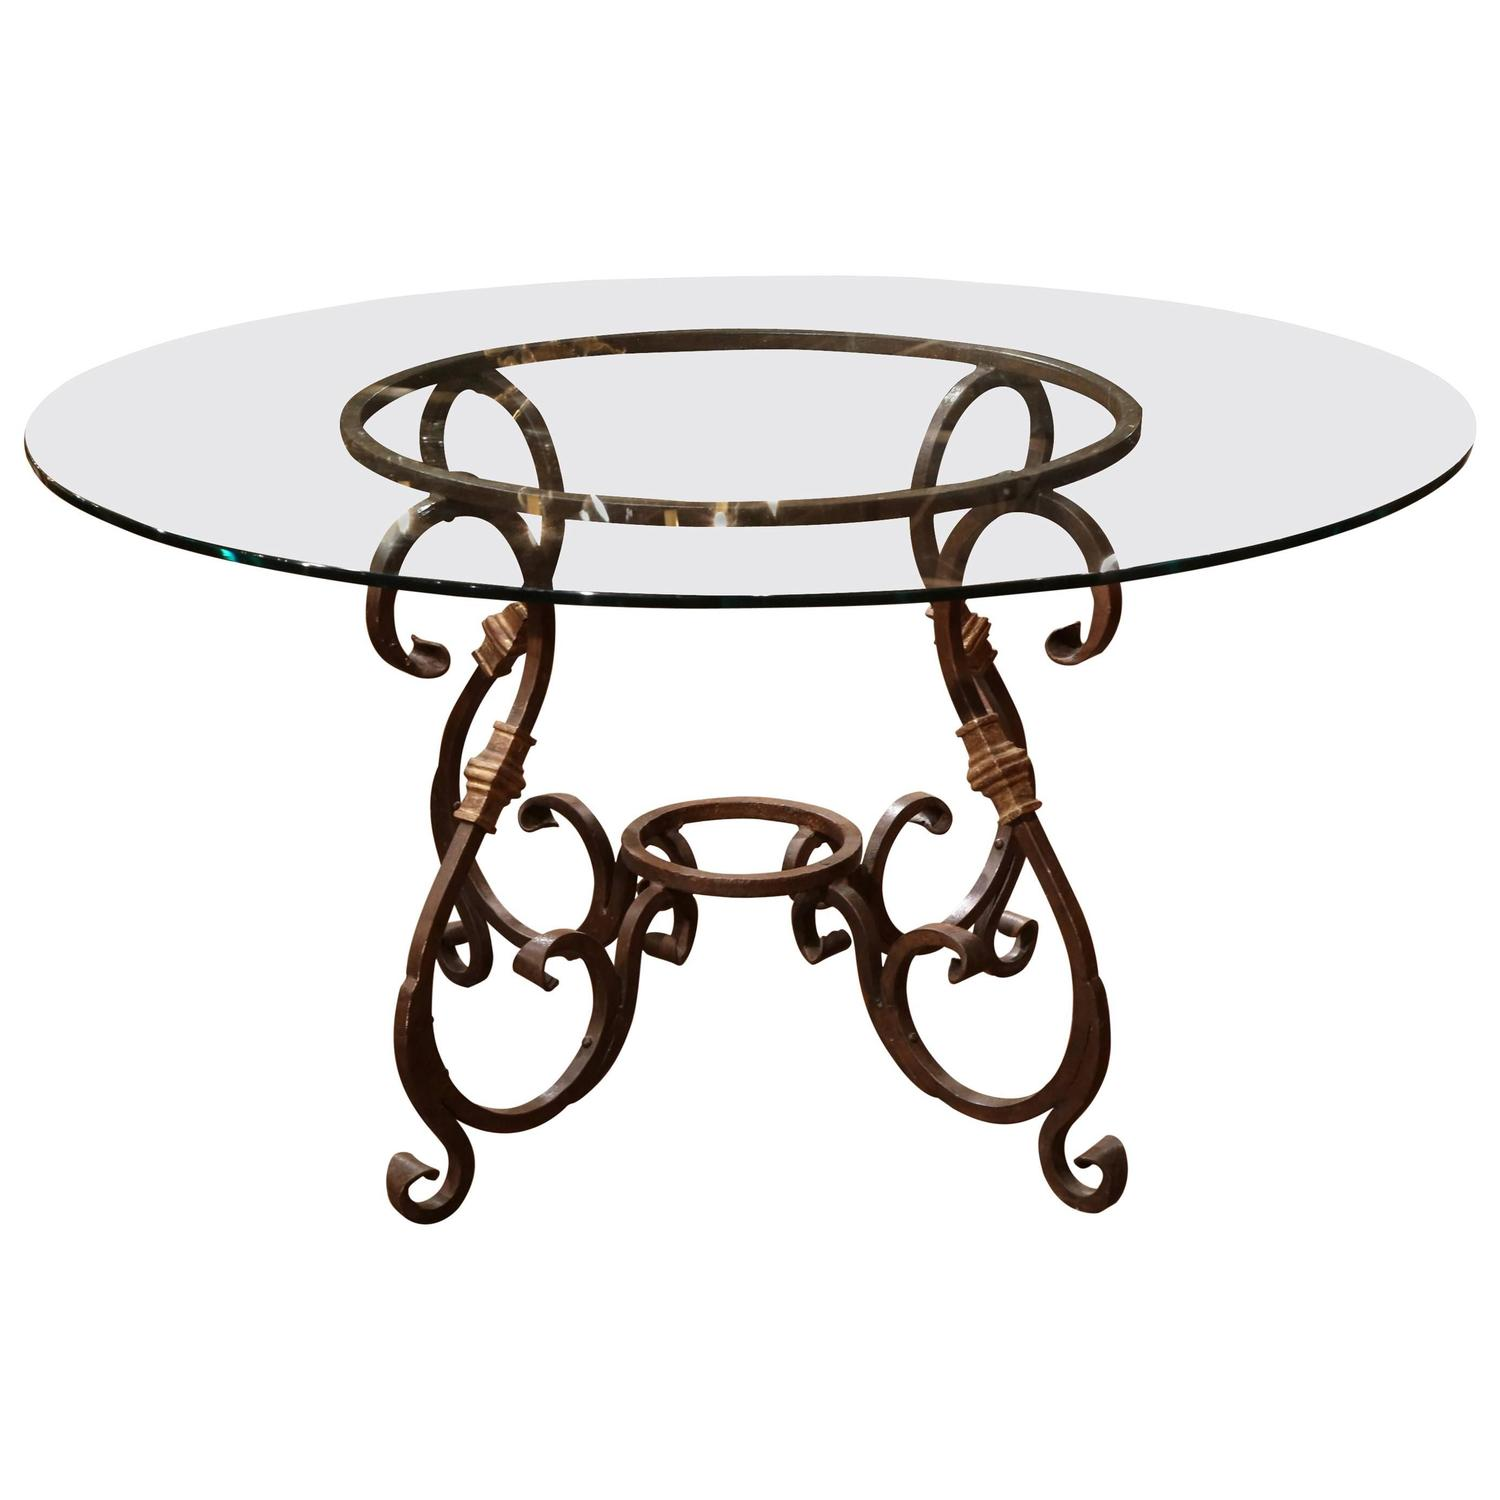 Wrought Iron French Table Base With Round Glass Top For Sale At 1stdibs